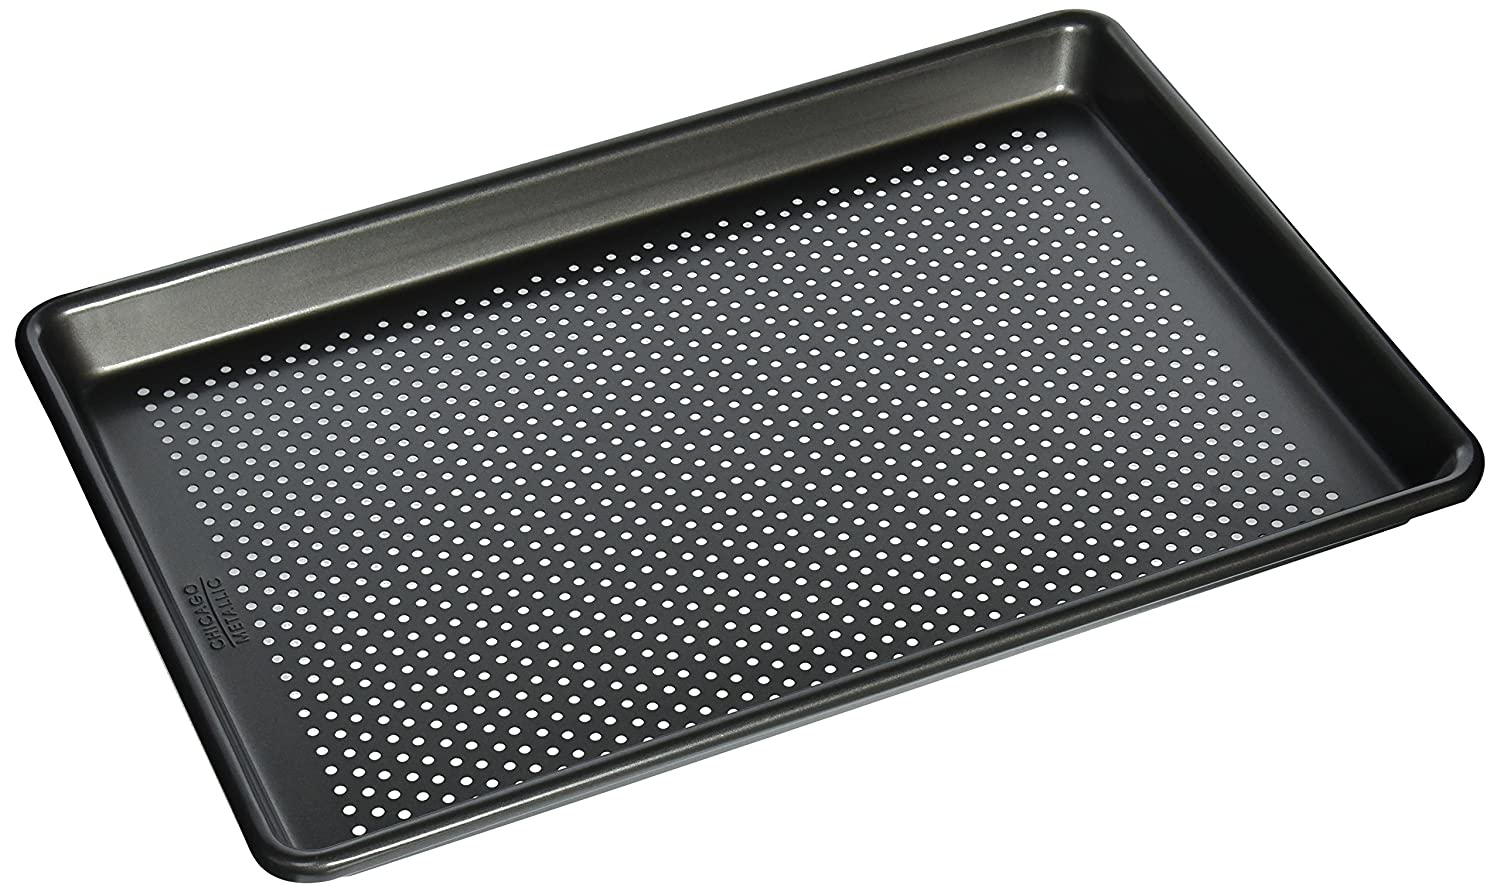 Chicago Metallic Professional Perforated Cookie/Jelly-Roll Pan, 14.75-Inch-by-9.75-Inch 26708